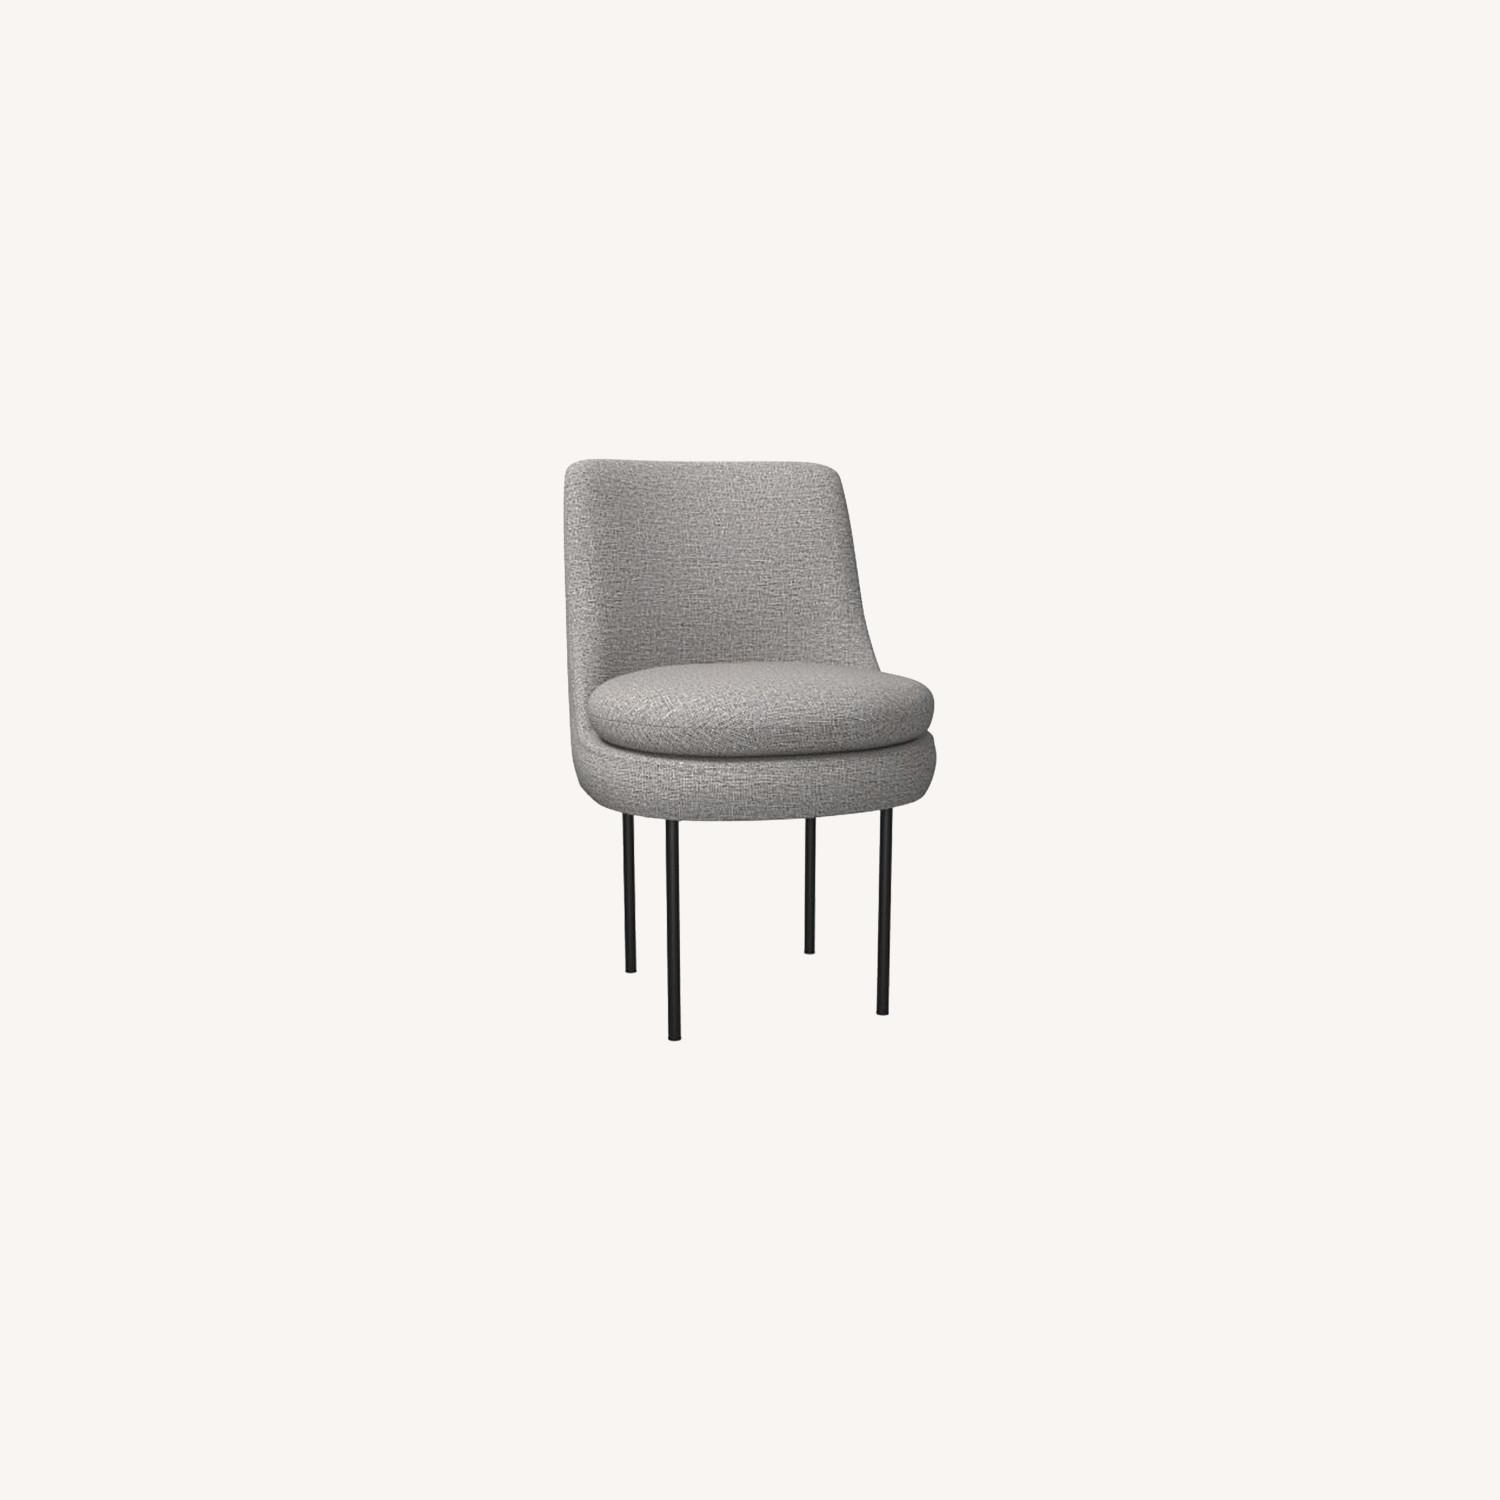 West Elm Modern Curved Upholstered Dining Chair - image-0